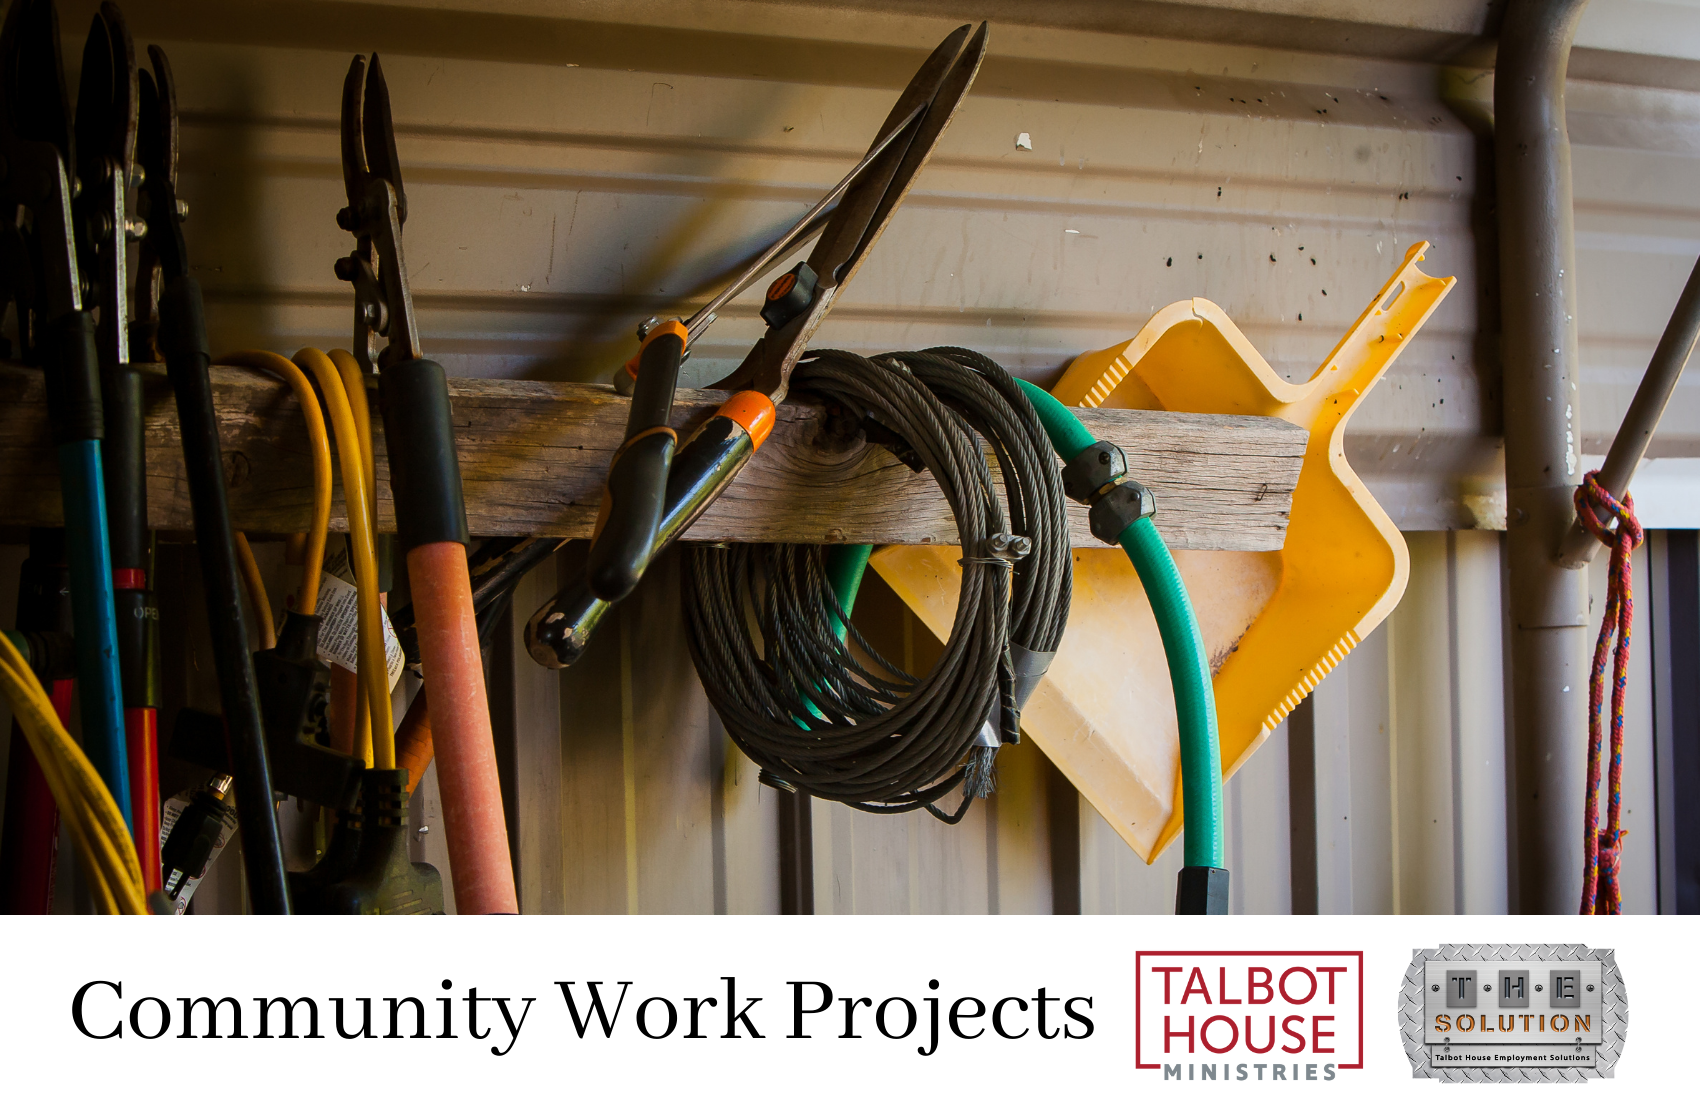 Solutions: Community Work Projects